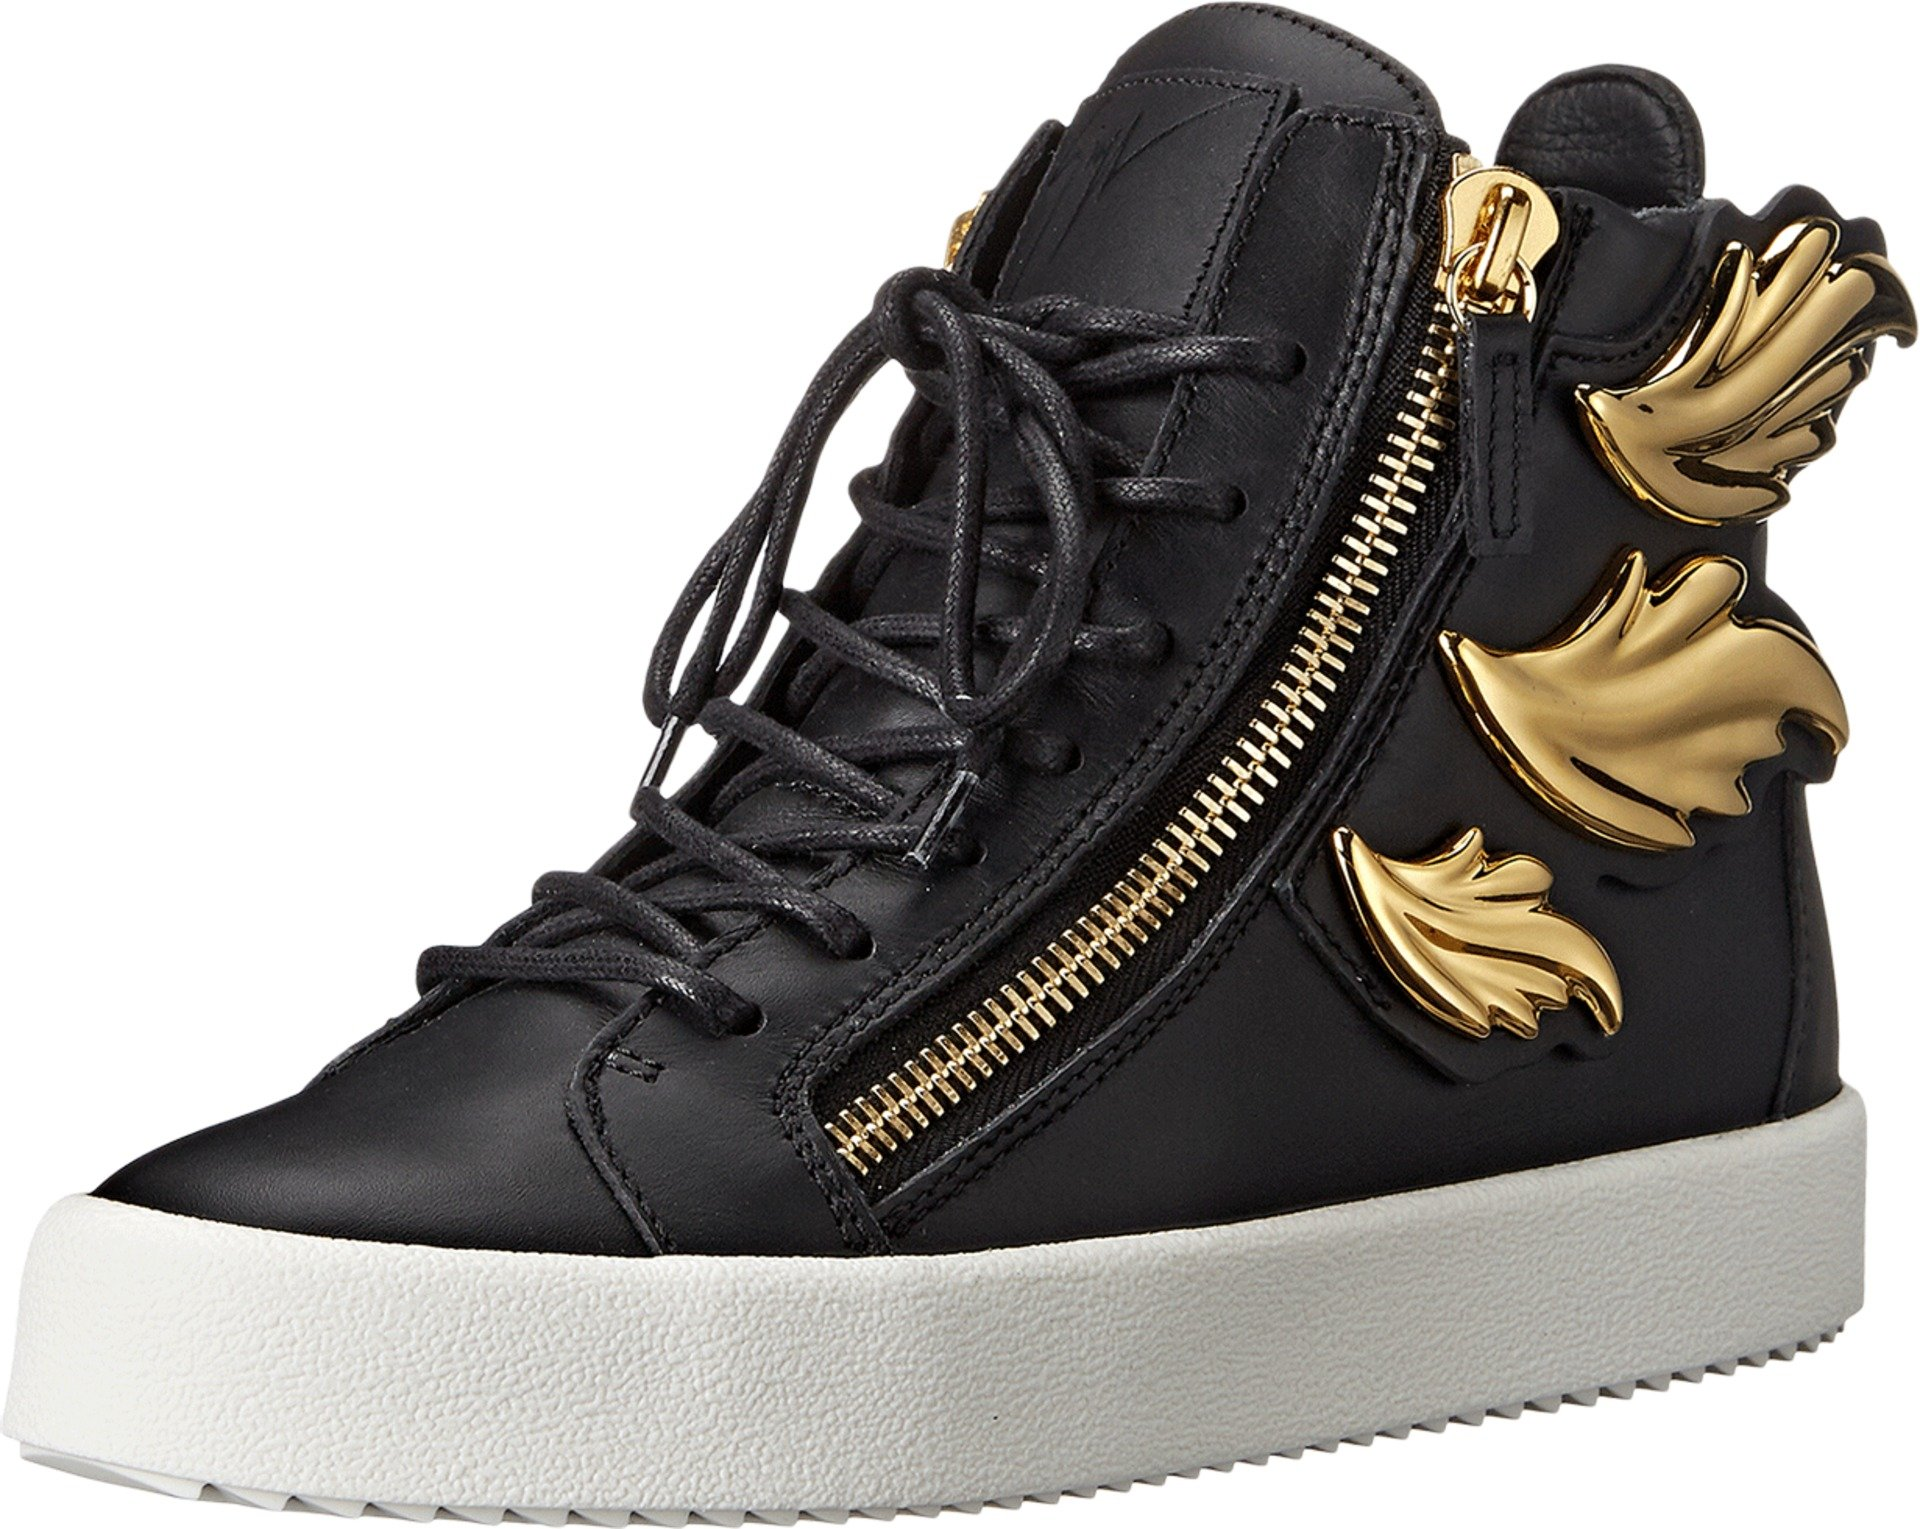 Giuseppe Zanotti Women's Hi-Top Winged Sneaker Birel Nero 35 (US Women's 5) M